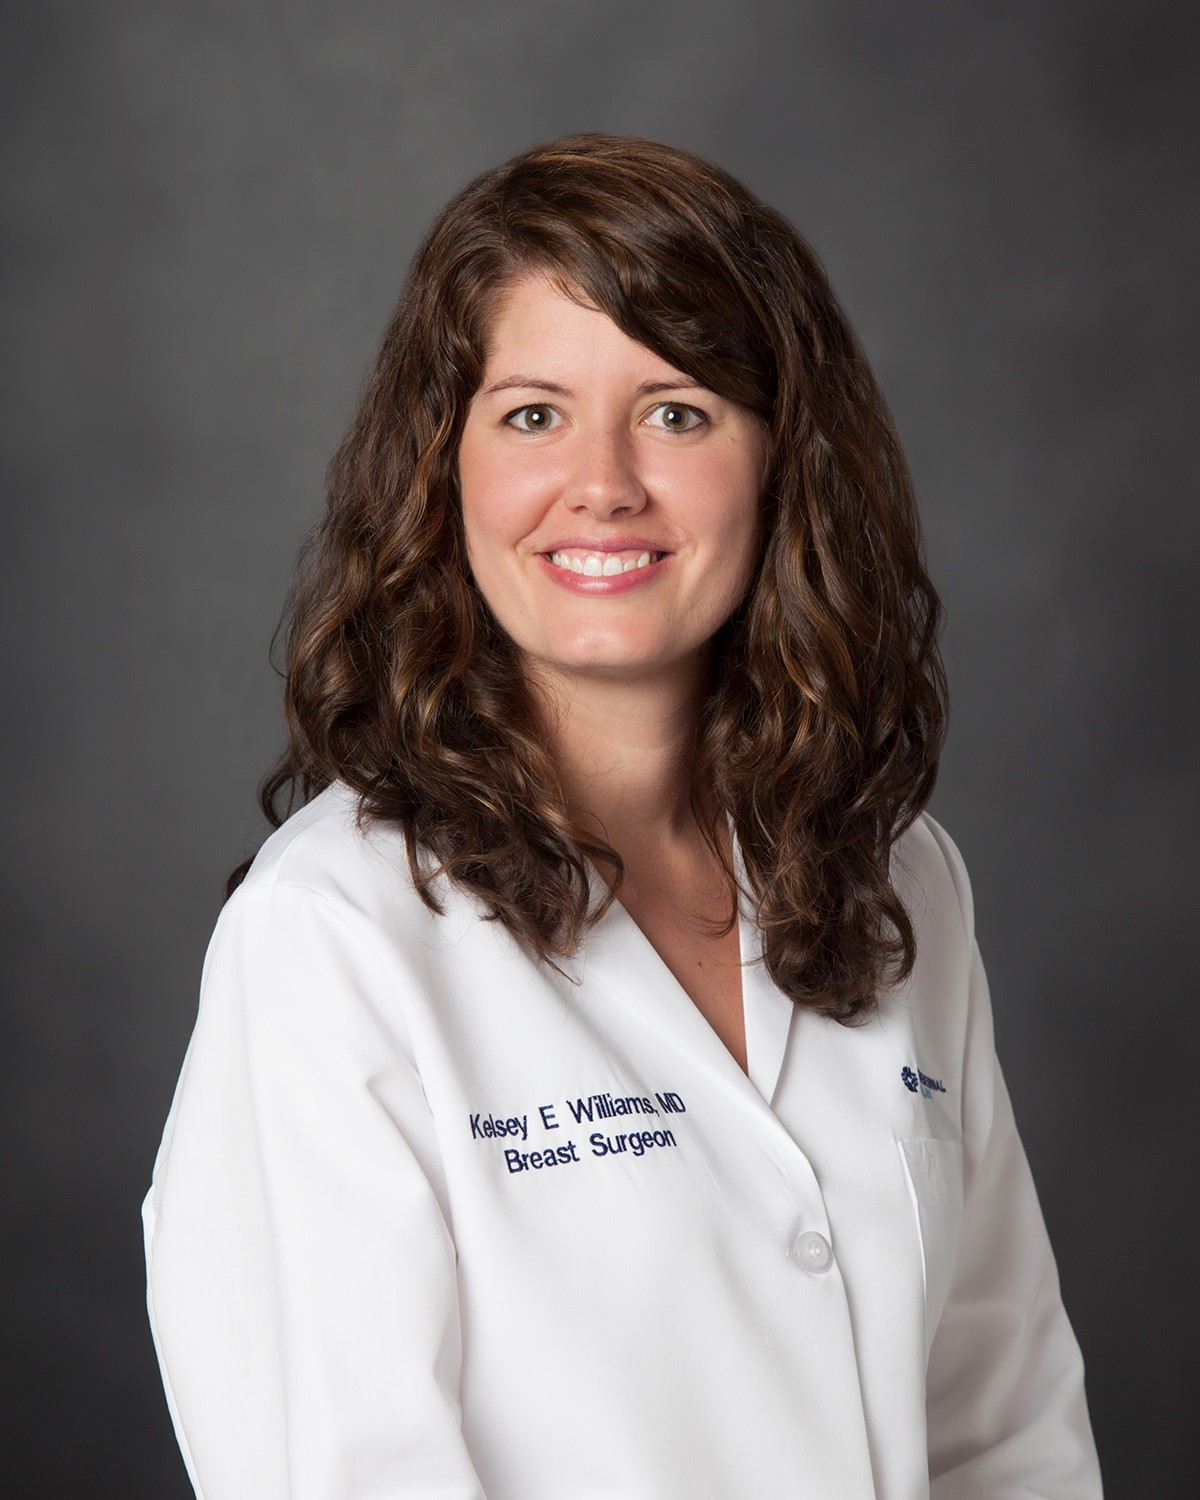 Dr. Kelsey Williams, Chesapeake Regional